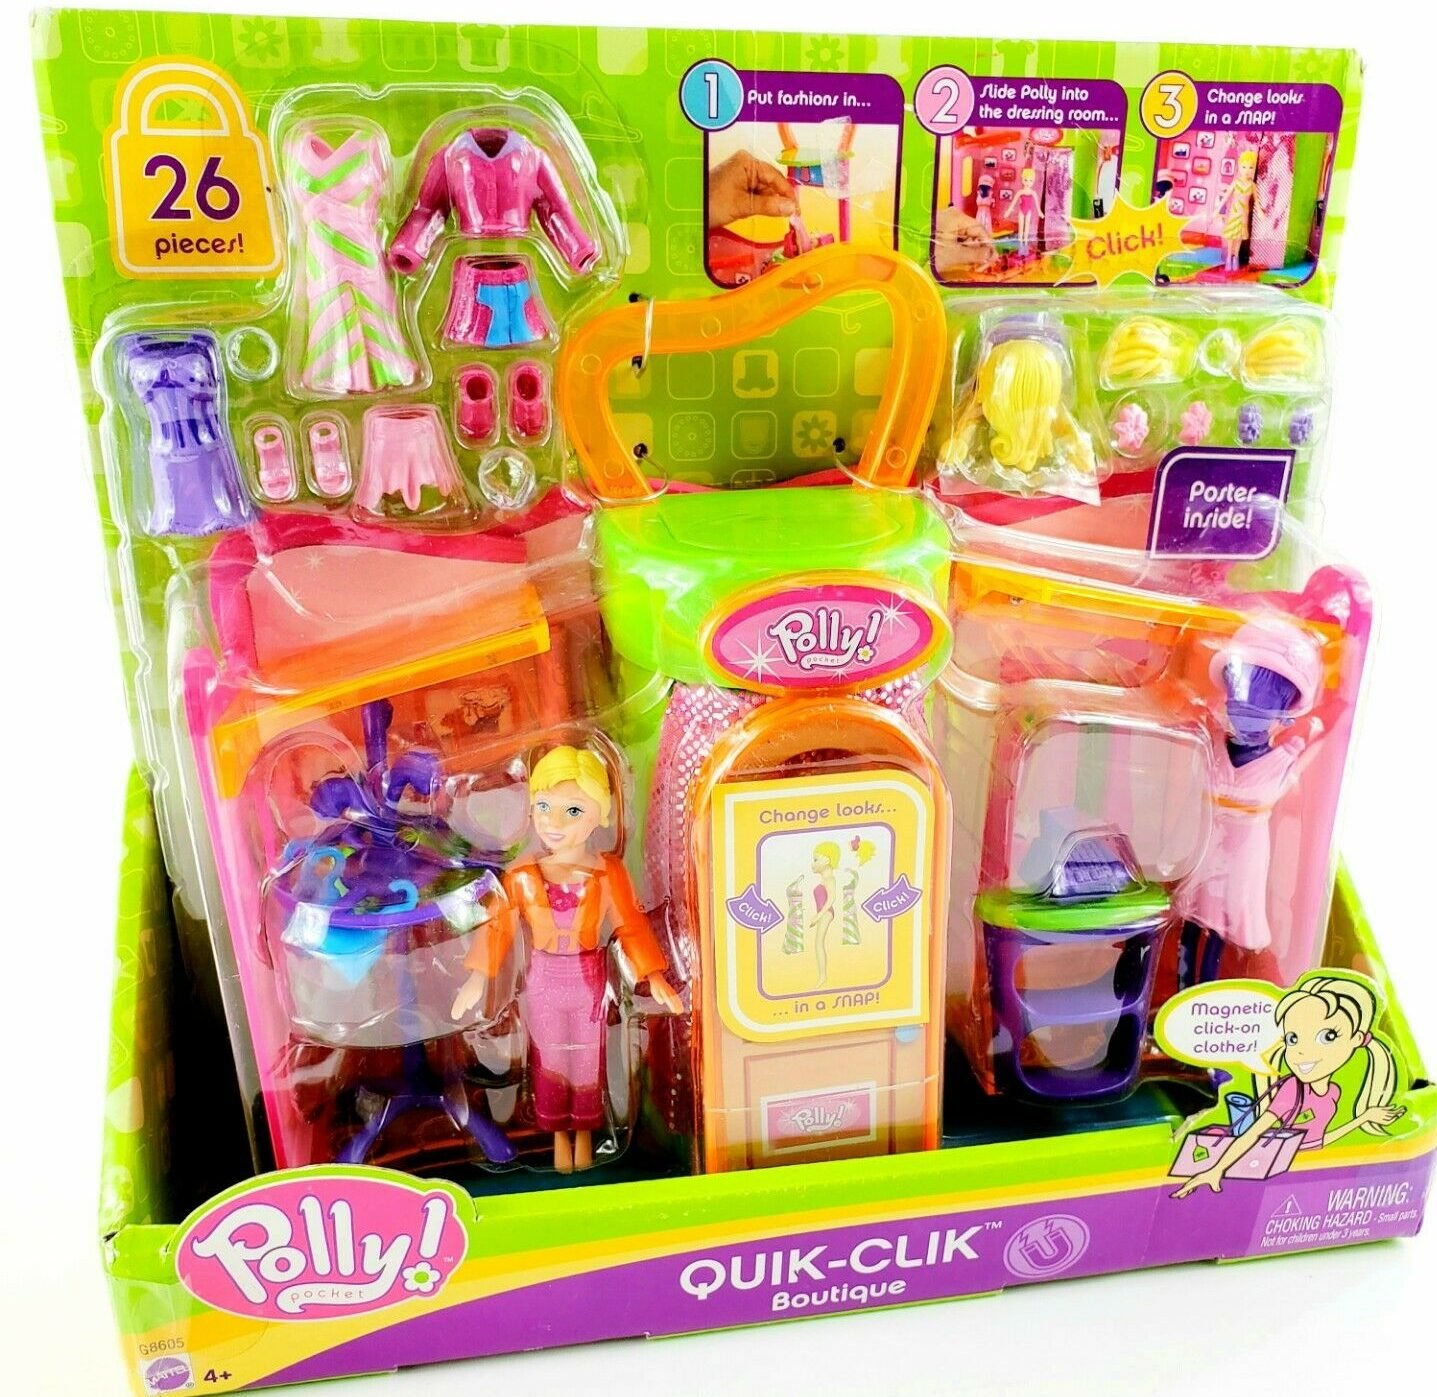 s l1600 e1617185424999 These Toys Were Banned For Being Seriously Dangerous